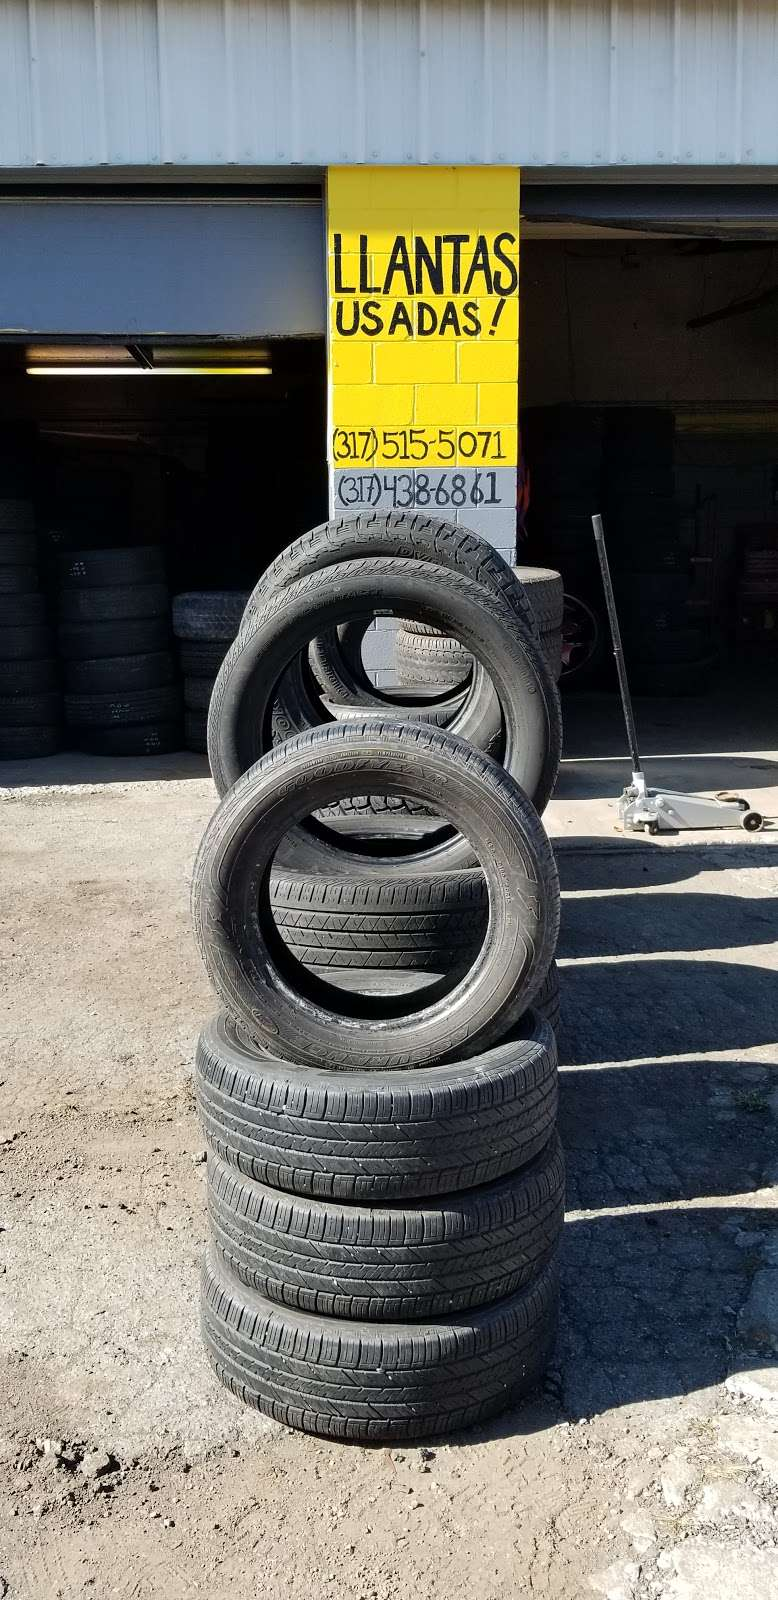 JADE USED TIRE SHOP - car repair  | Photo 8 of 10 | Address: 6105 E 38th St, Indianapolis, IN 46226, USA | Phone: (317) 515-5071